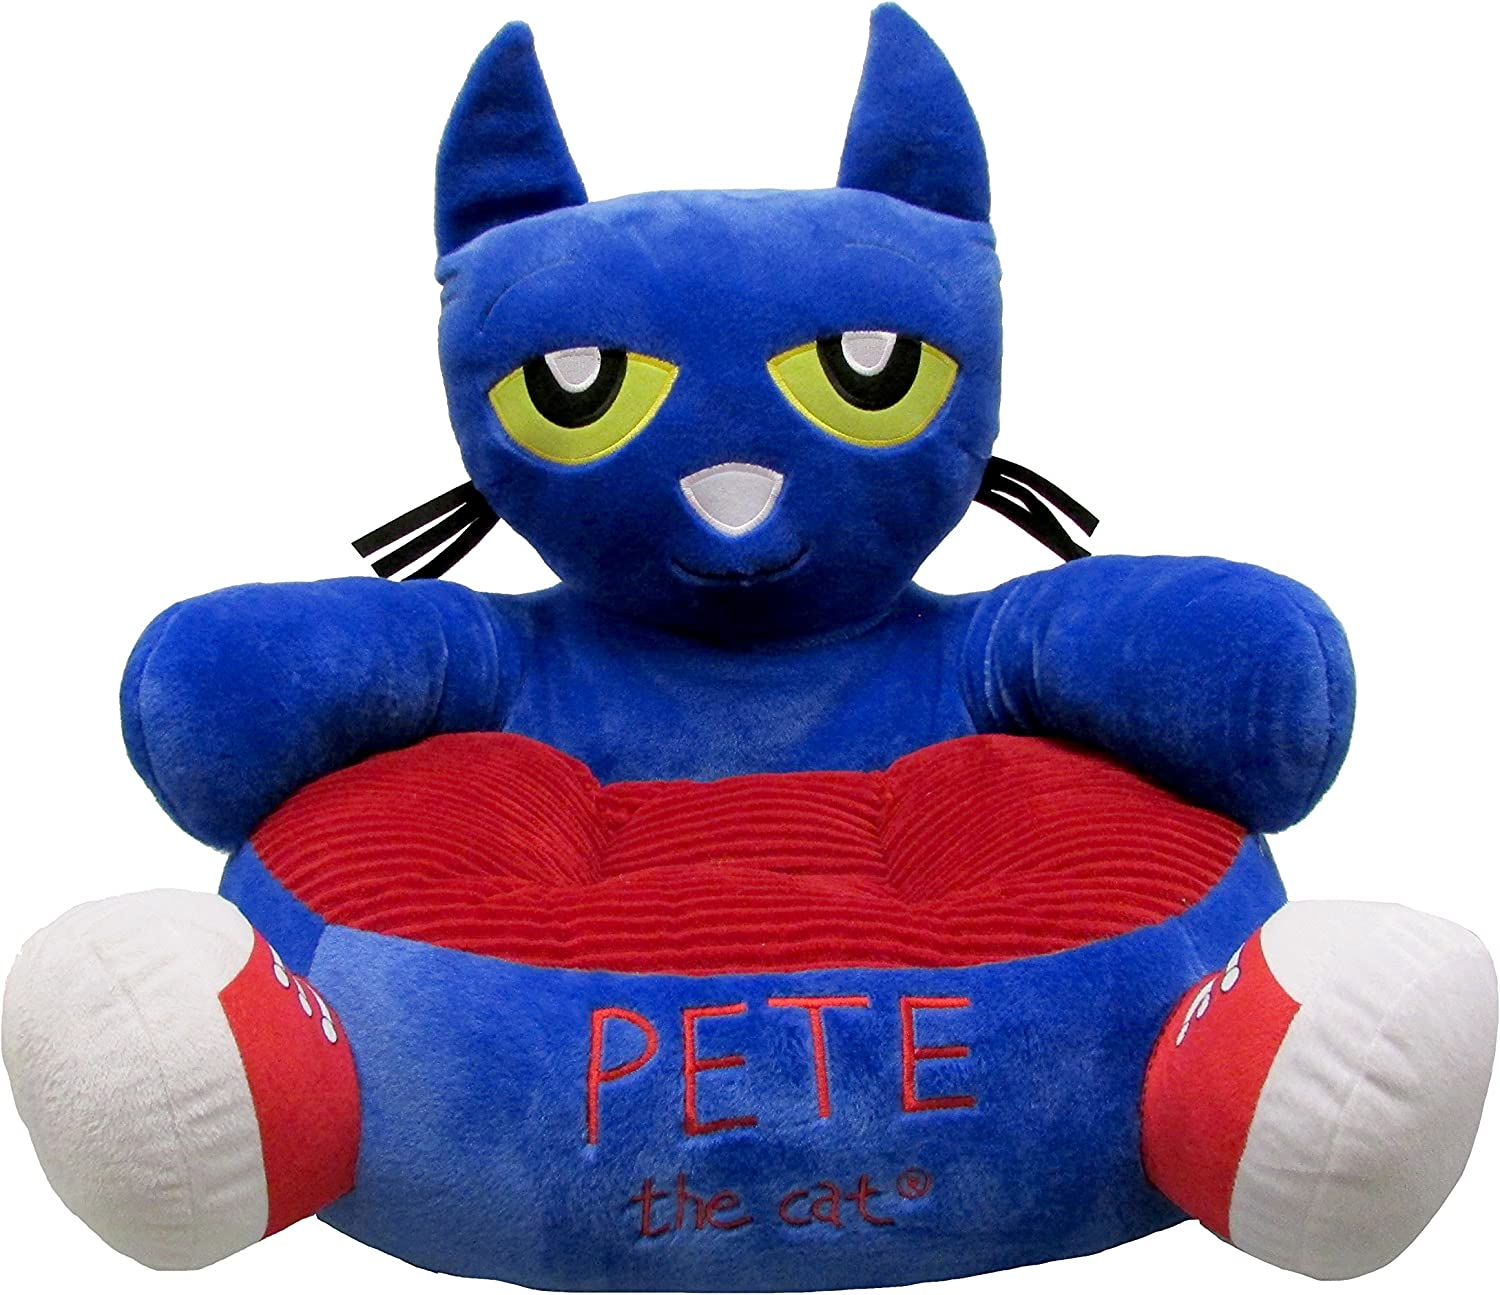 Kids Preferred 91206 Pete the Cat Soft Reading Chair, Multicolor